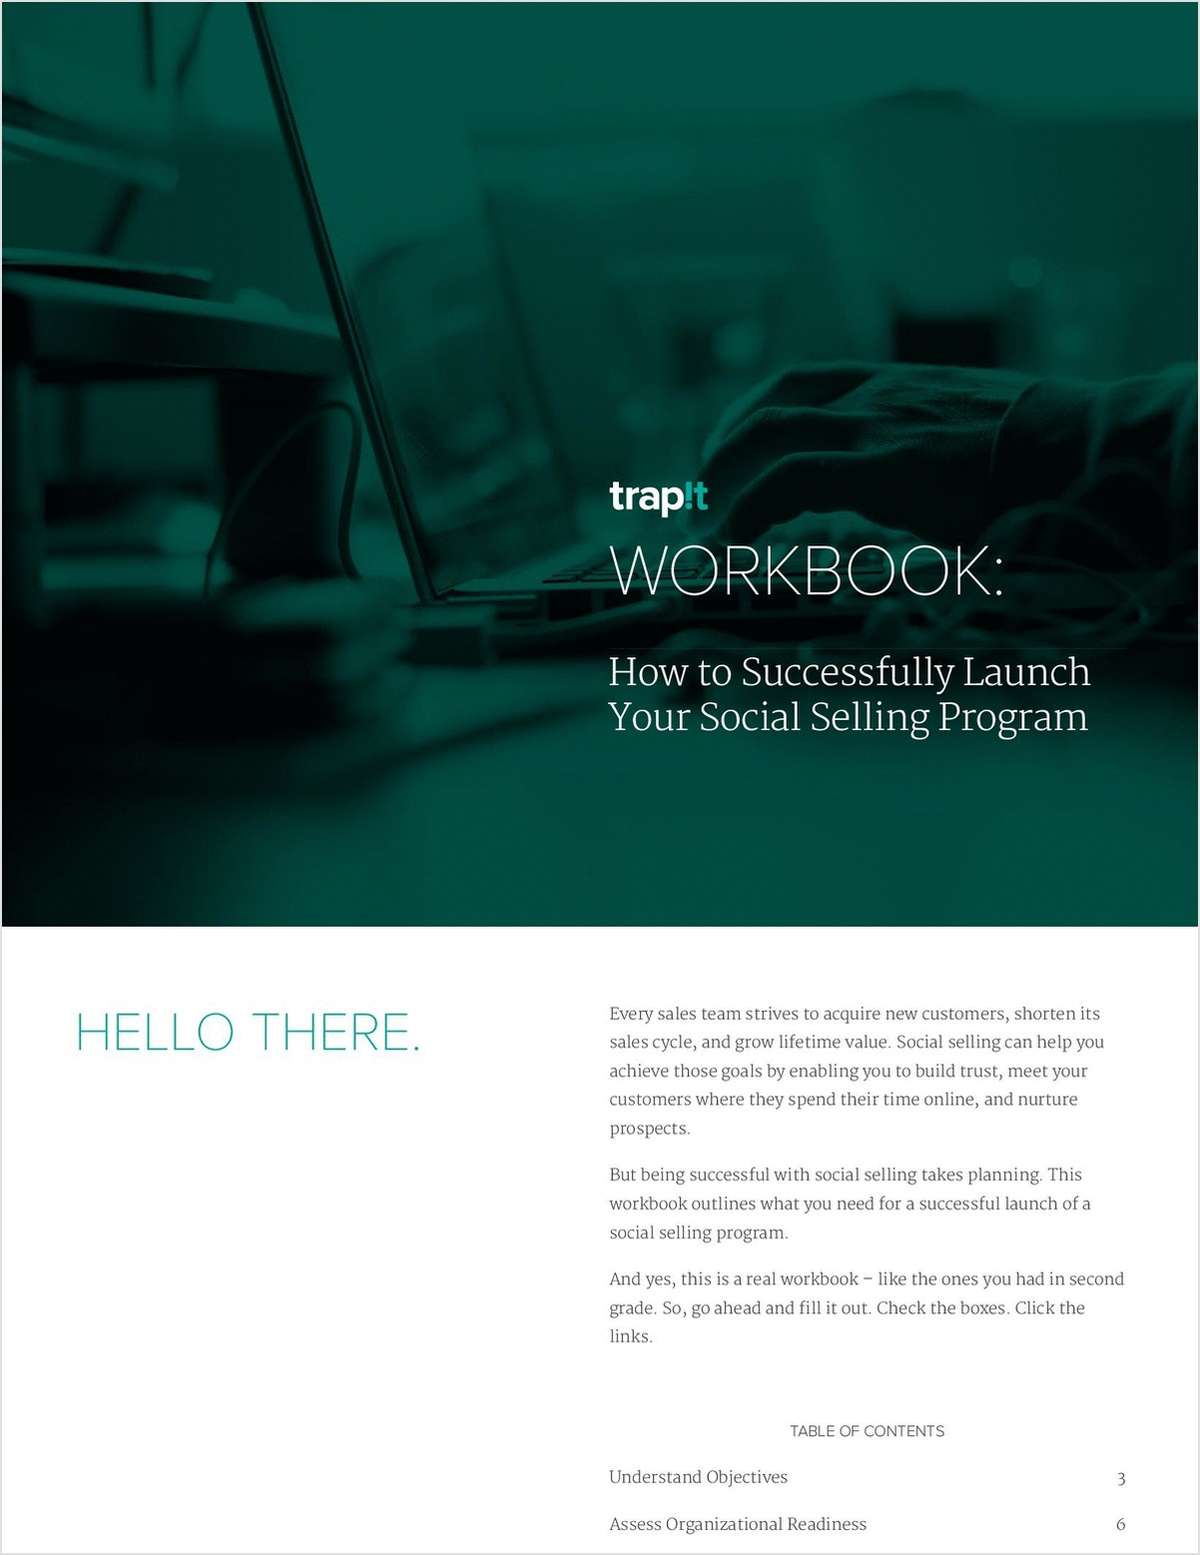 Your Social Selling Workbook